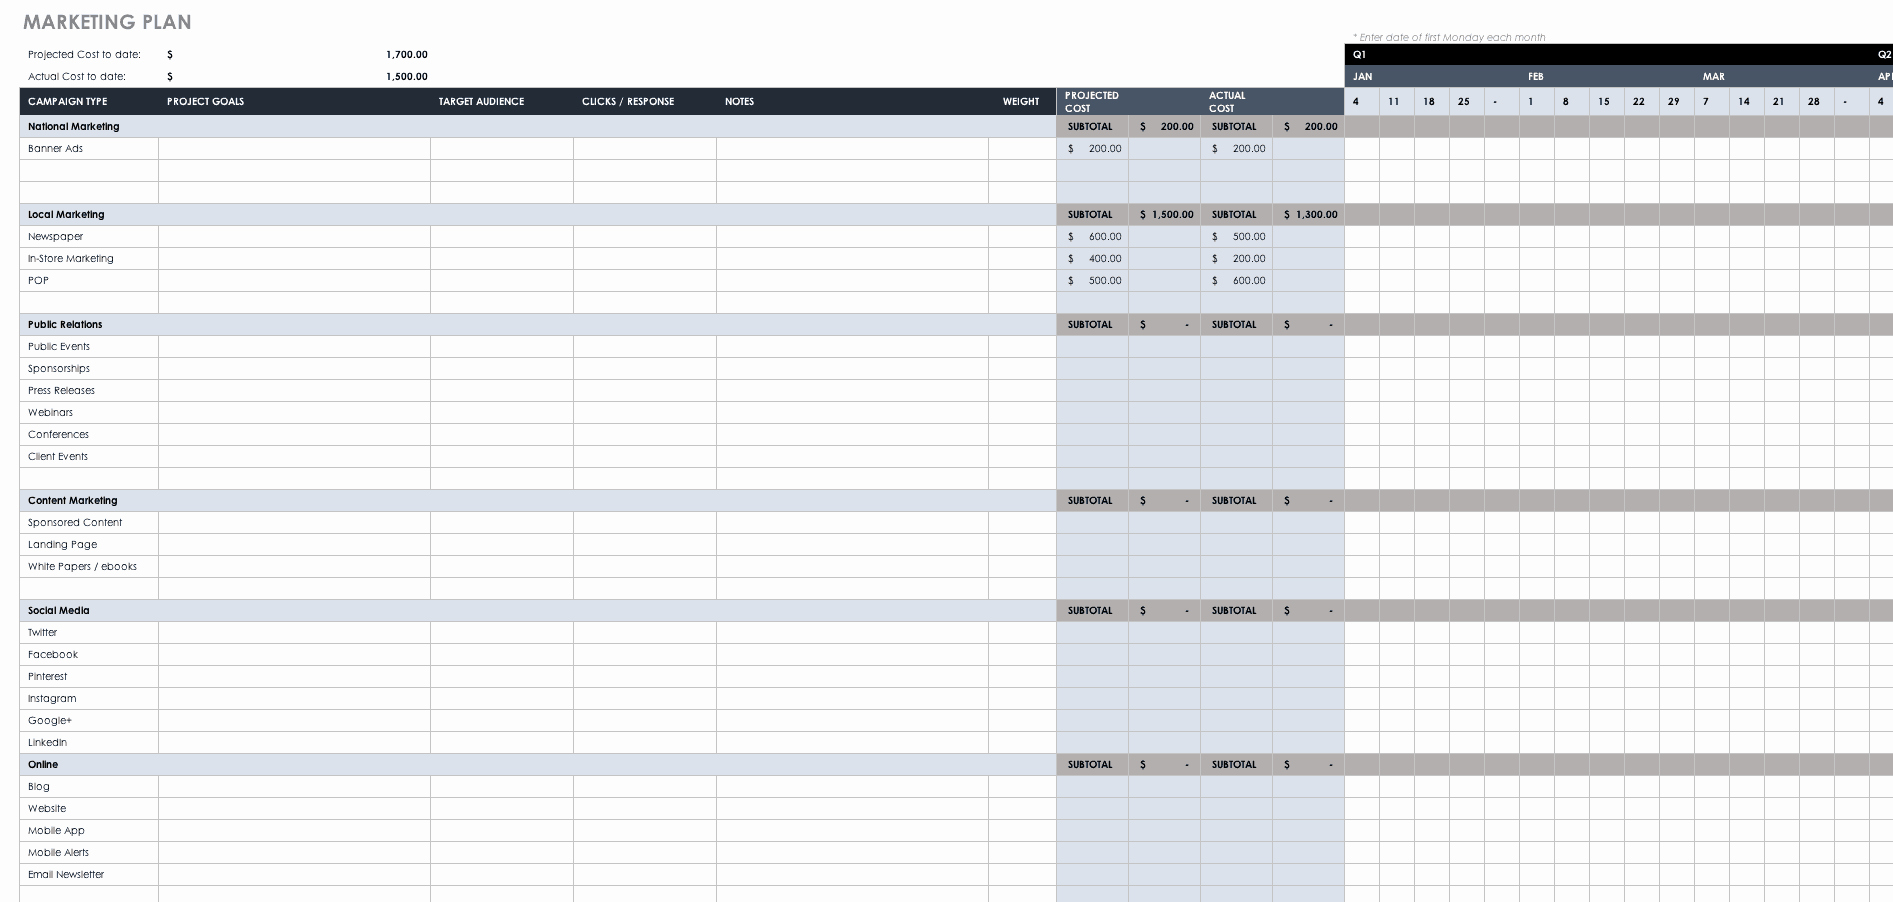 Marketing Plan Outline Template Inspirational Free Marketing Plan Templates for Excel